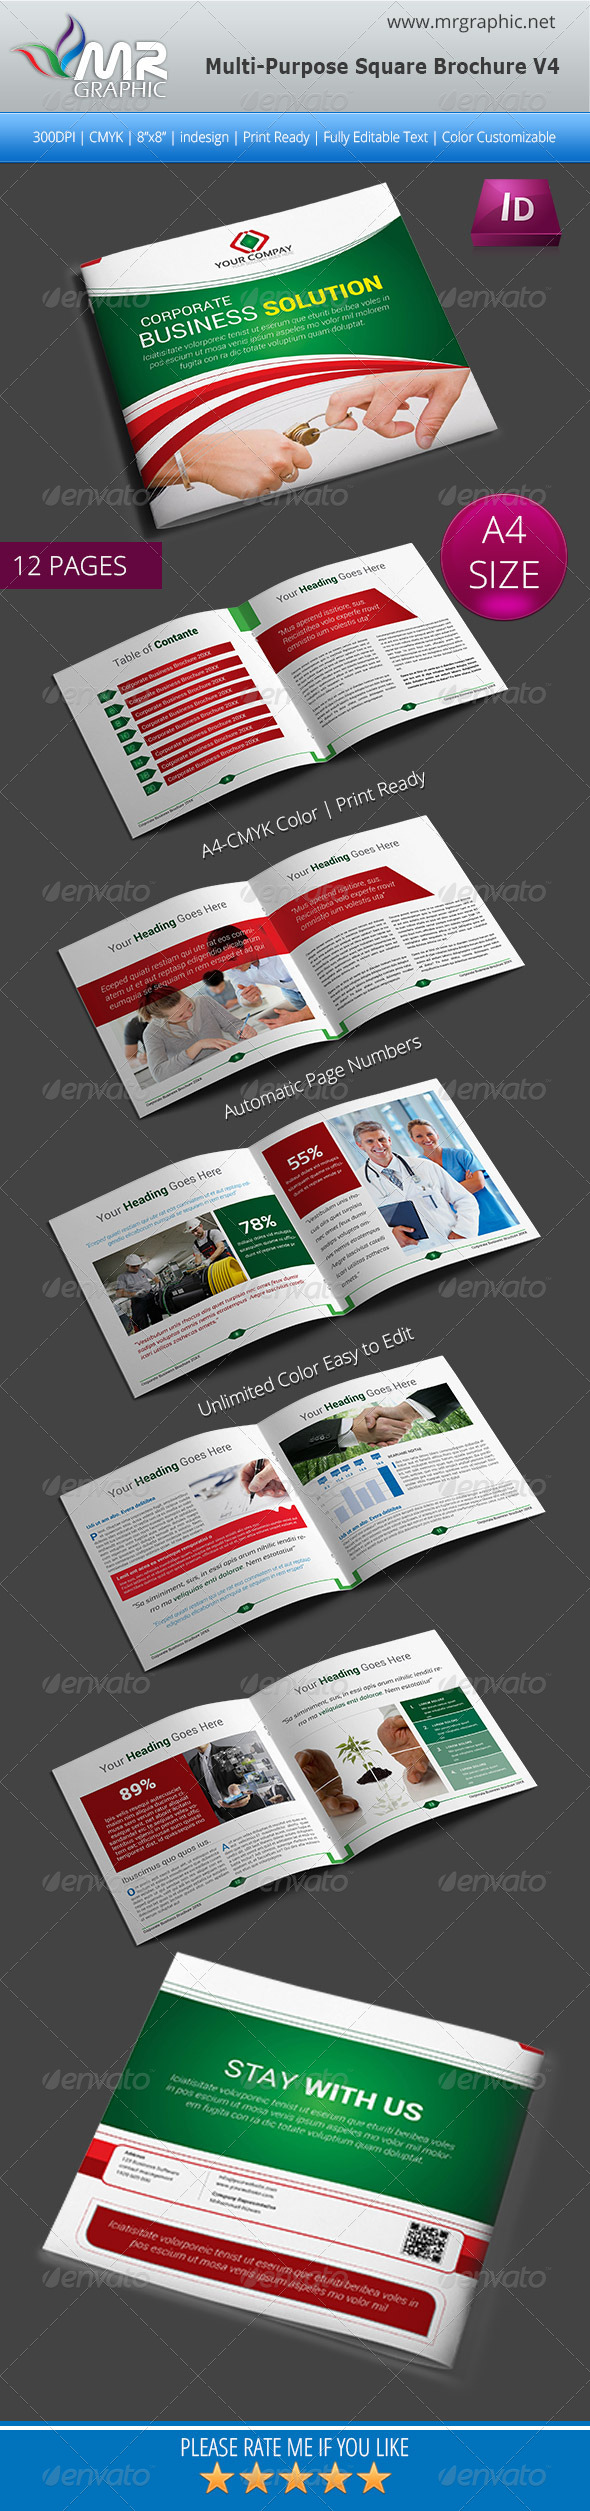 GraphicRiver Multipurpose Square Brochure Template Vol-04 5855662